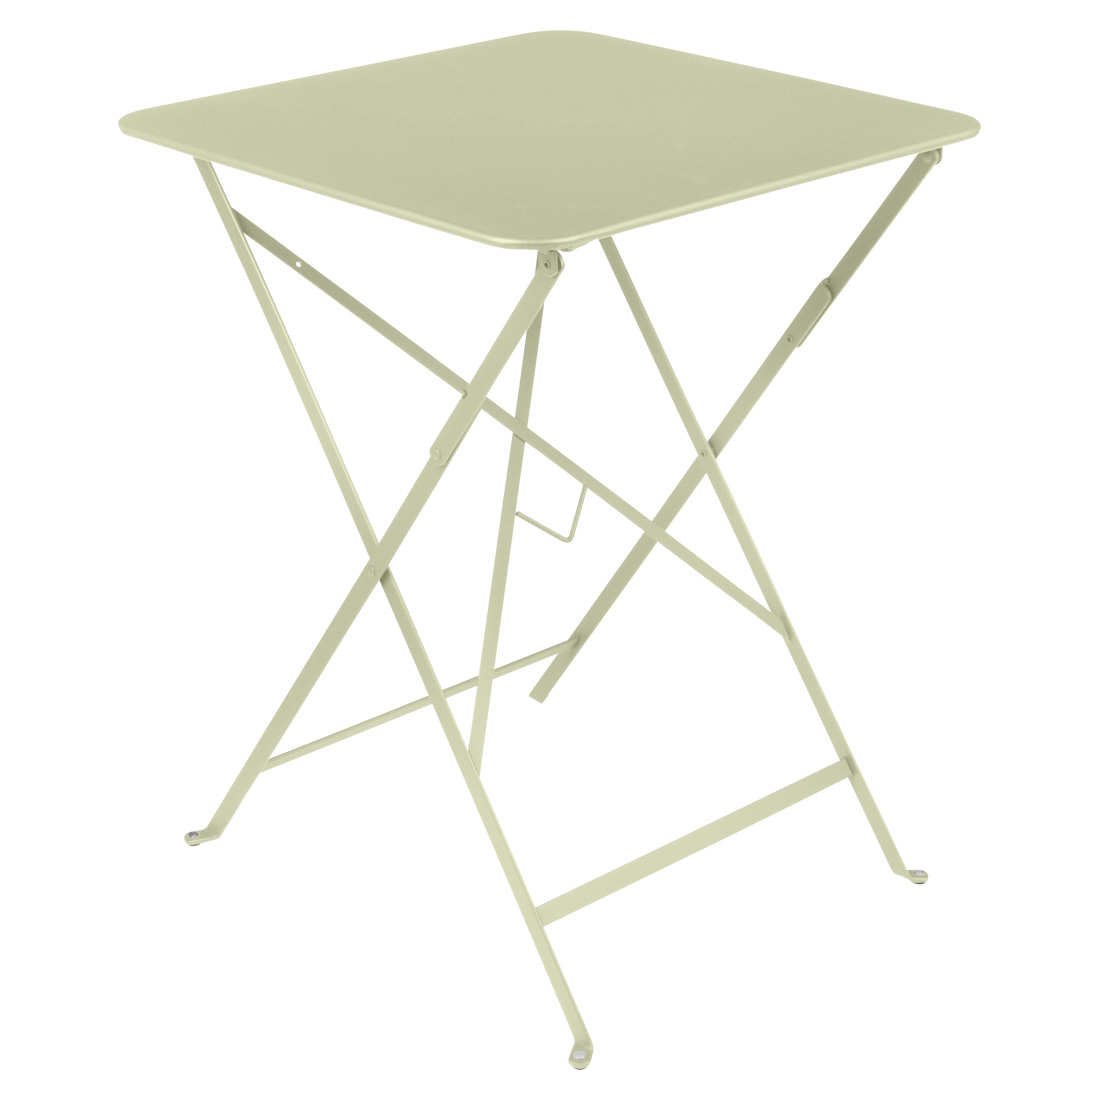 Small Folding Dining Table Ikea Outdoor Coffee Kitchen Tables Gear And Chairs Side Uk Expocafeperu Com